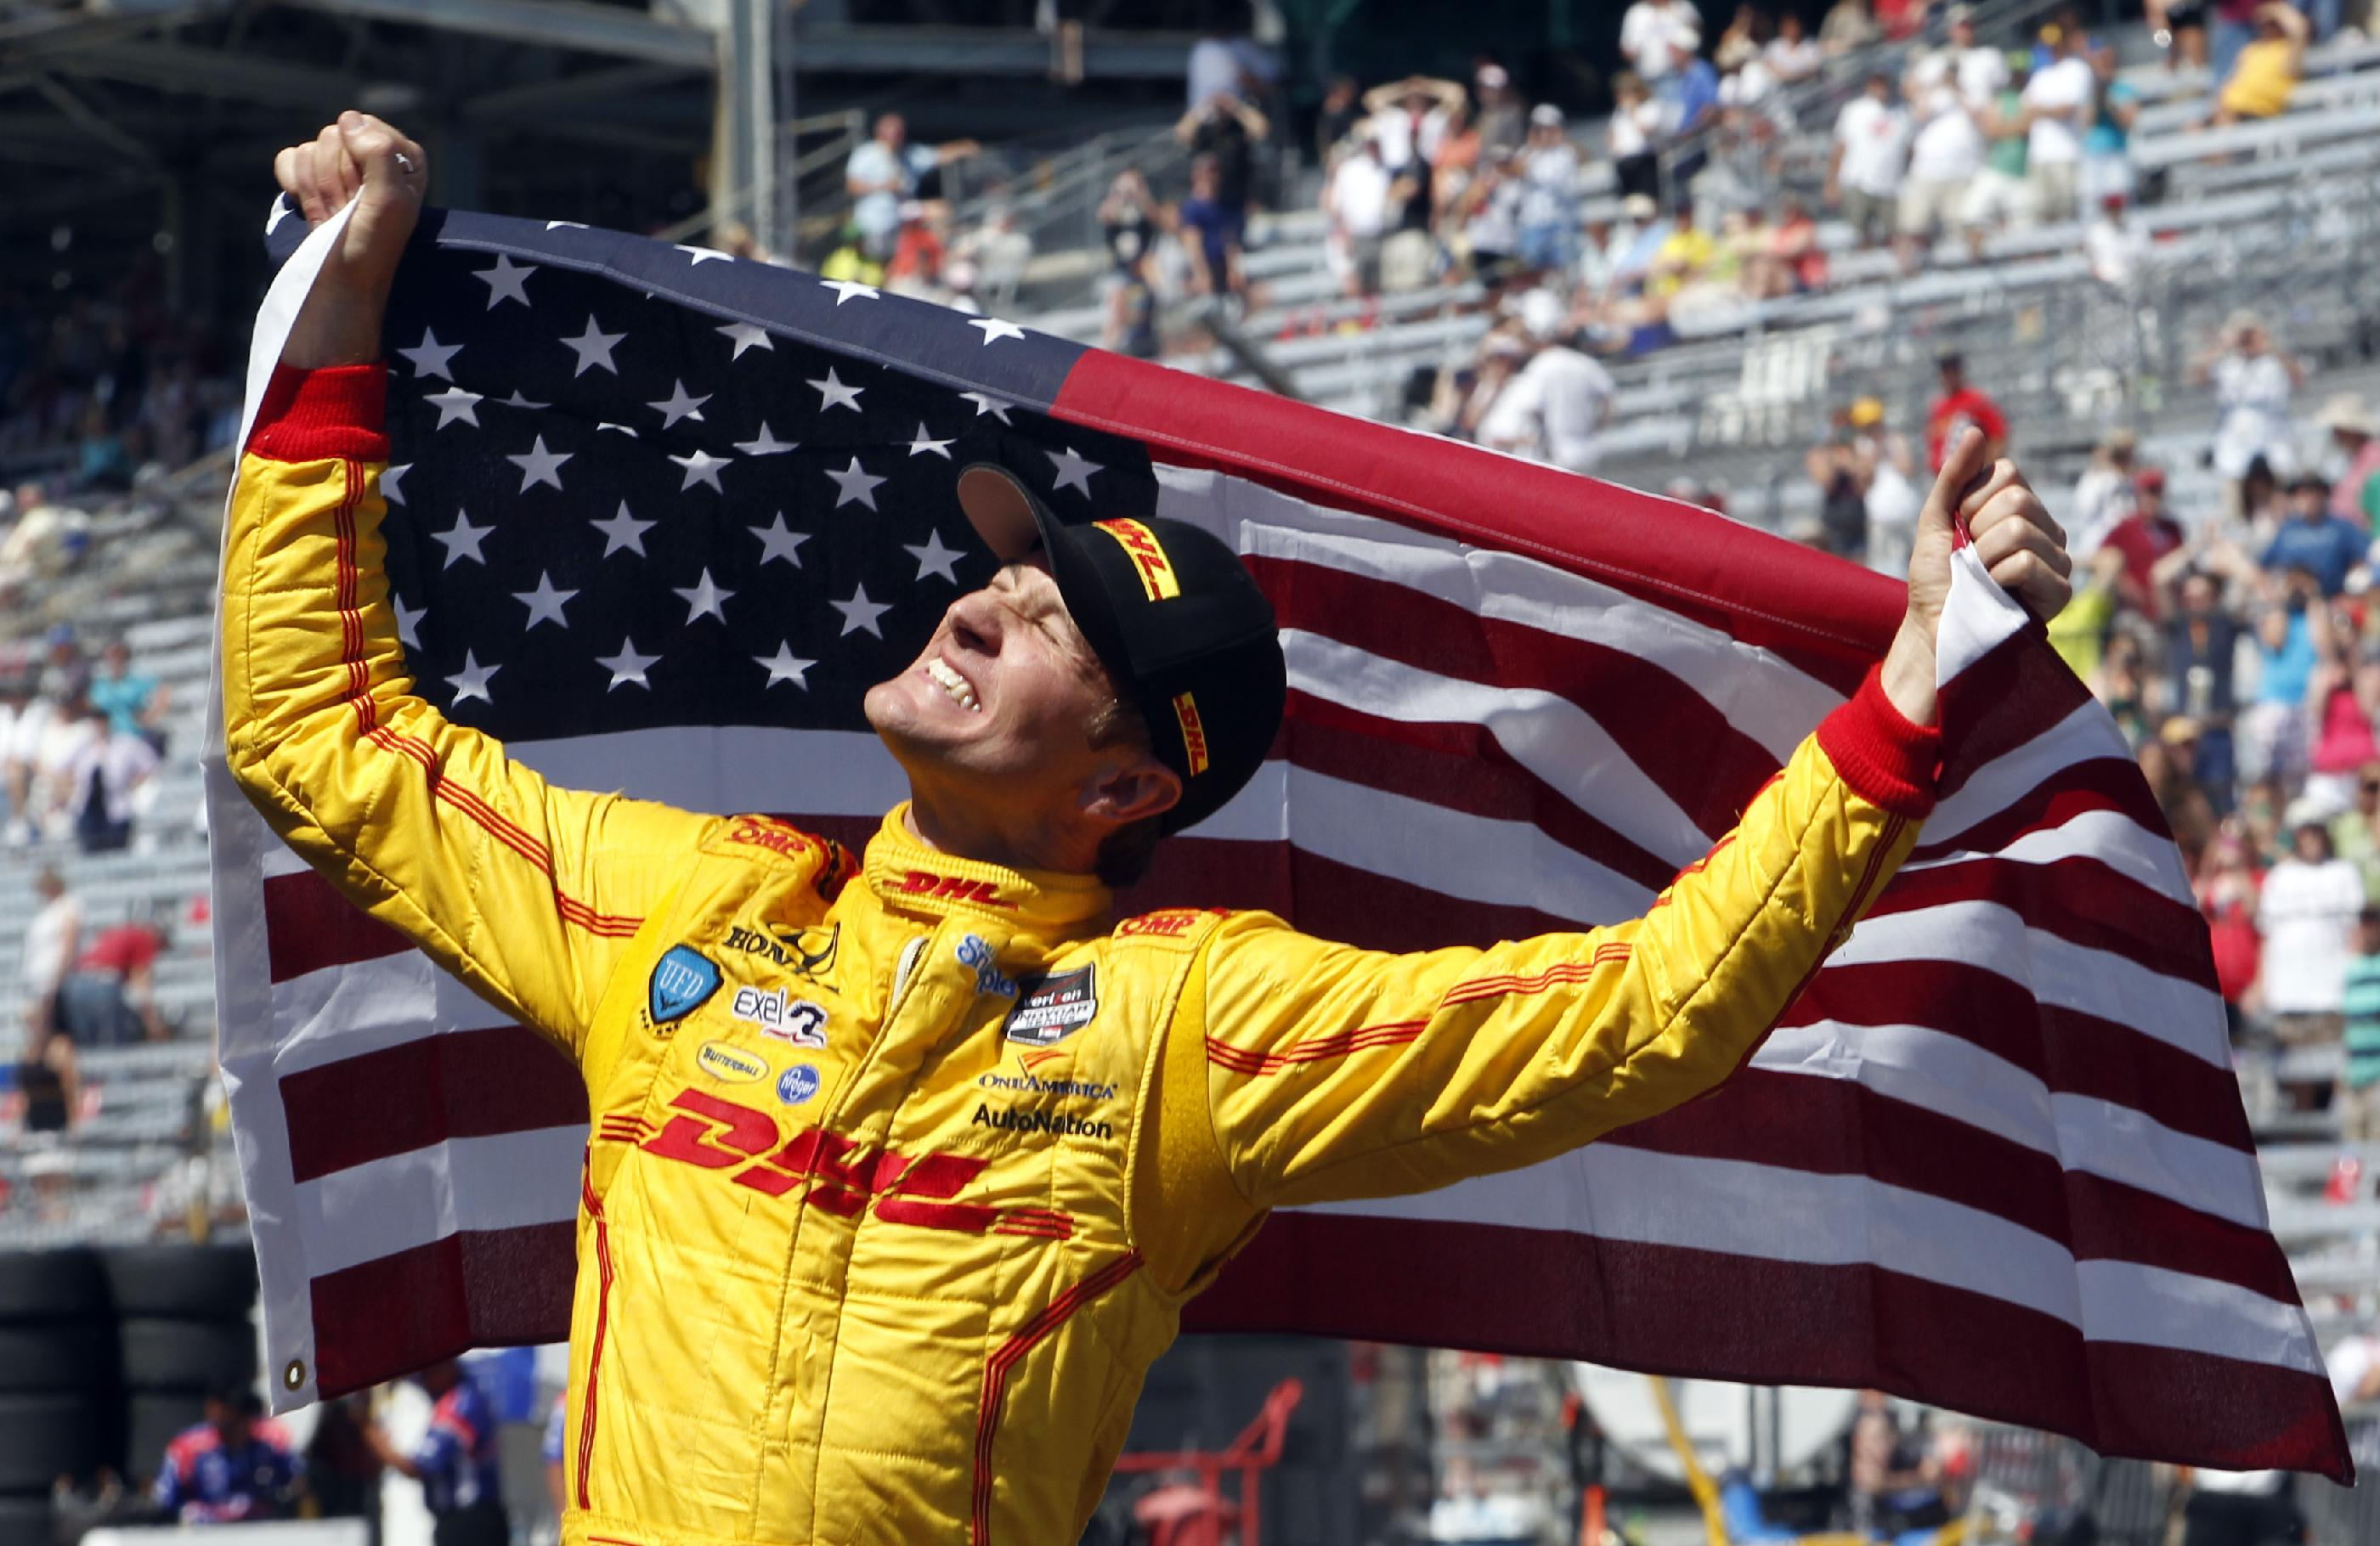 Indy 500 thriller as Hunter-Reay edges Castroneves